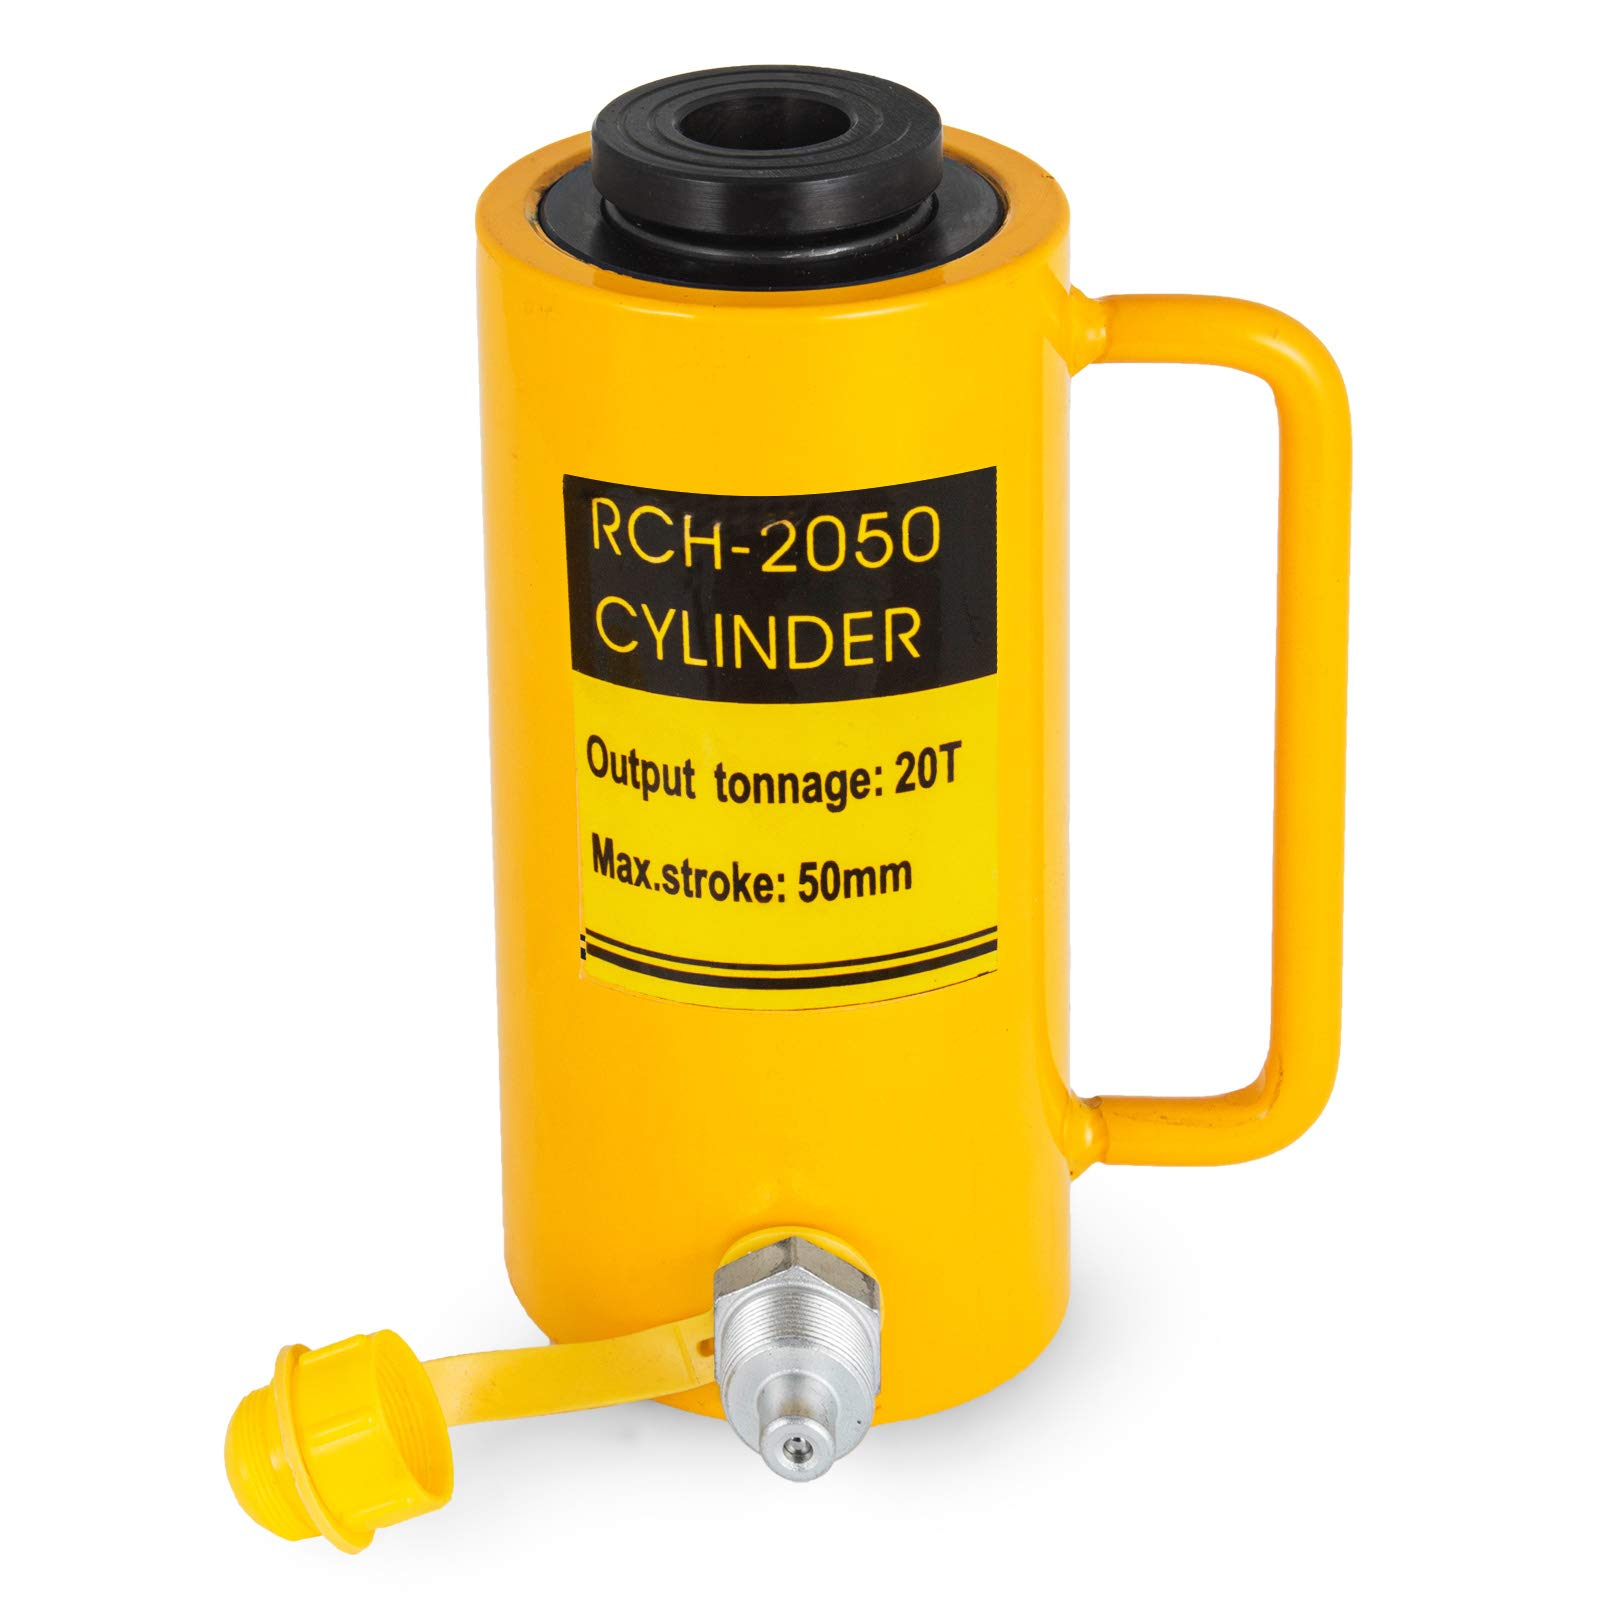 Mophorn 20T 2'' Hydraulic Cylinder Jack Hollow Single Acting Hydraulic Ram Cylinder 50mm Hydraulic Lifting Cylinders for Riggers Fabricators (20T 2'' Hollow)